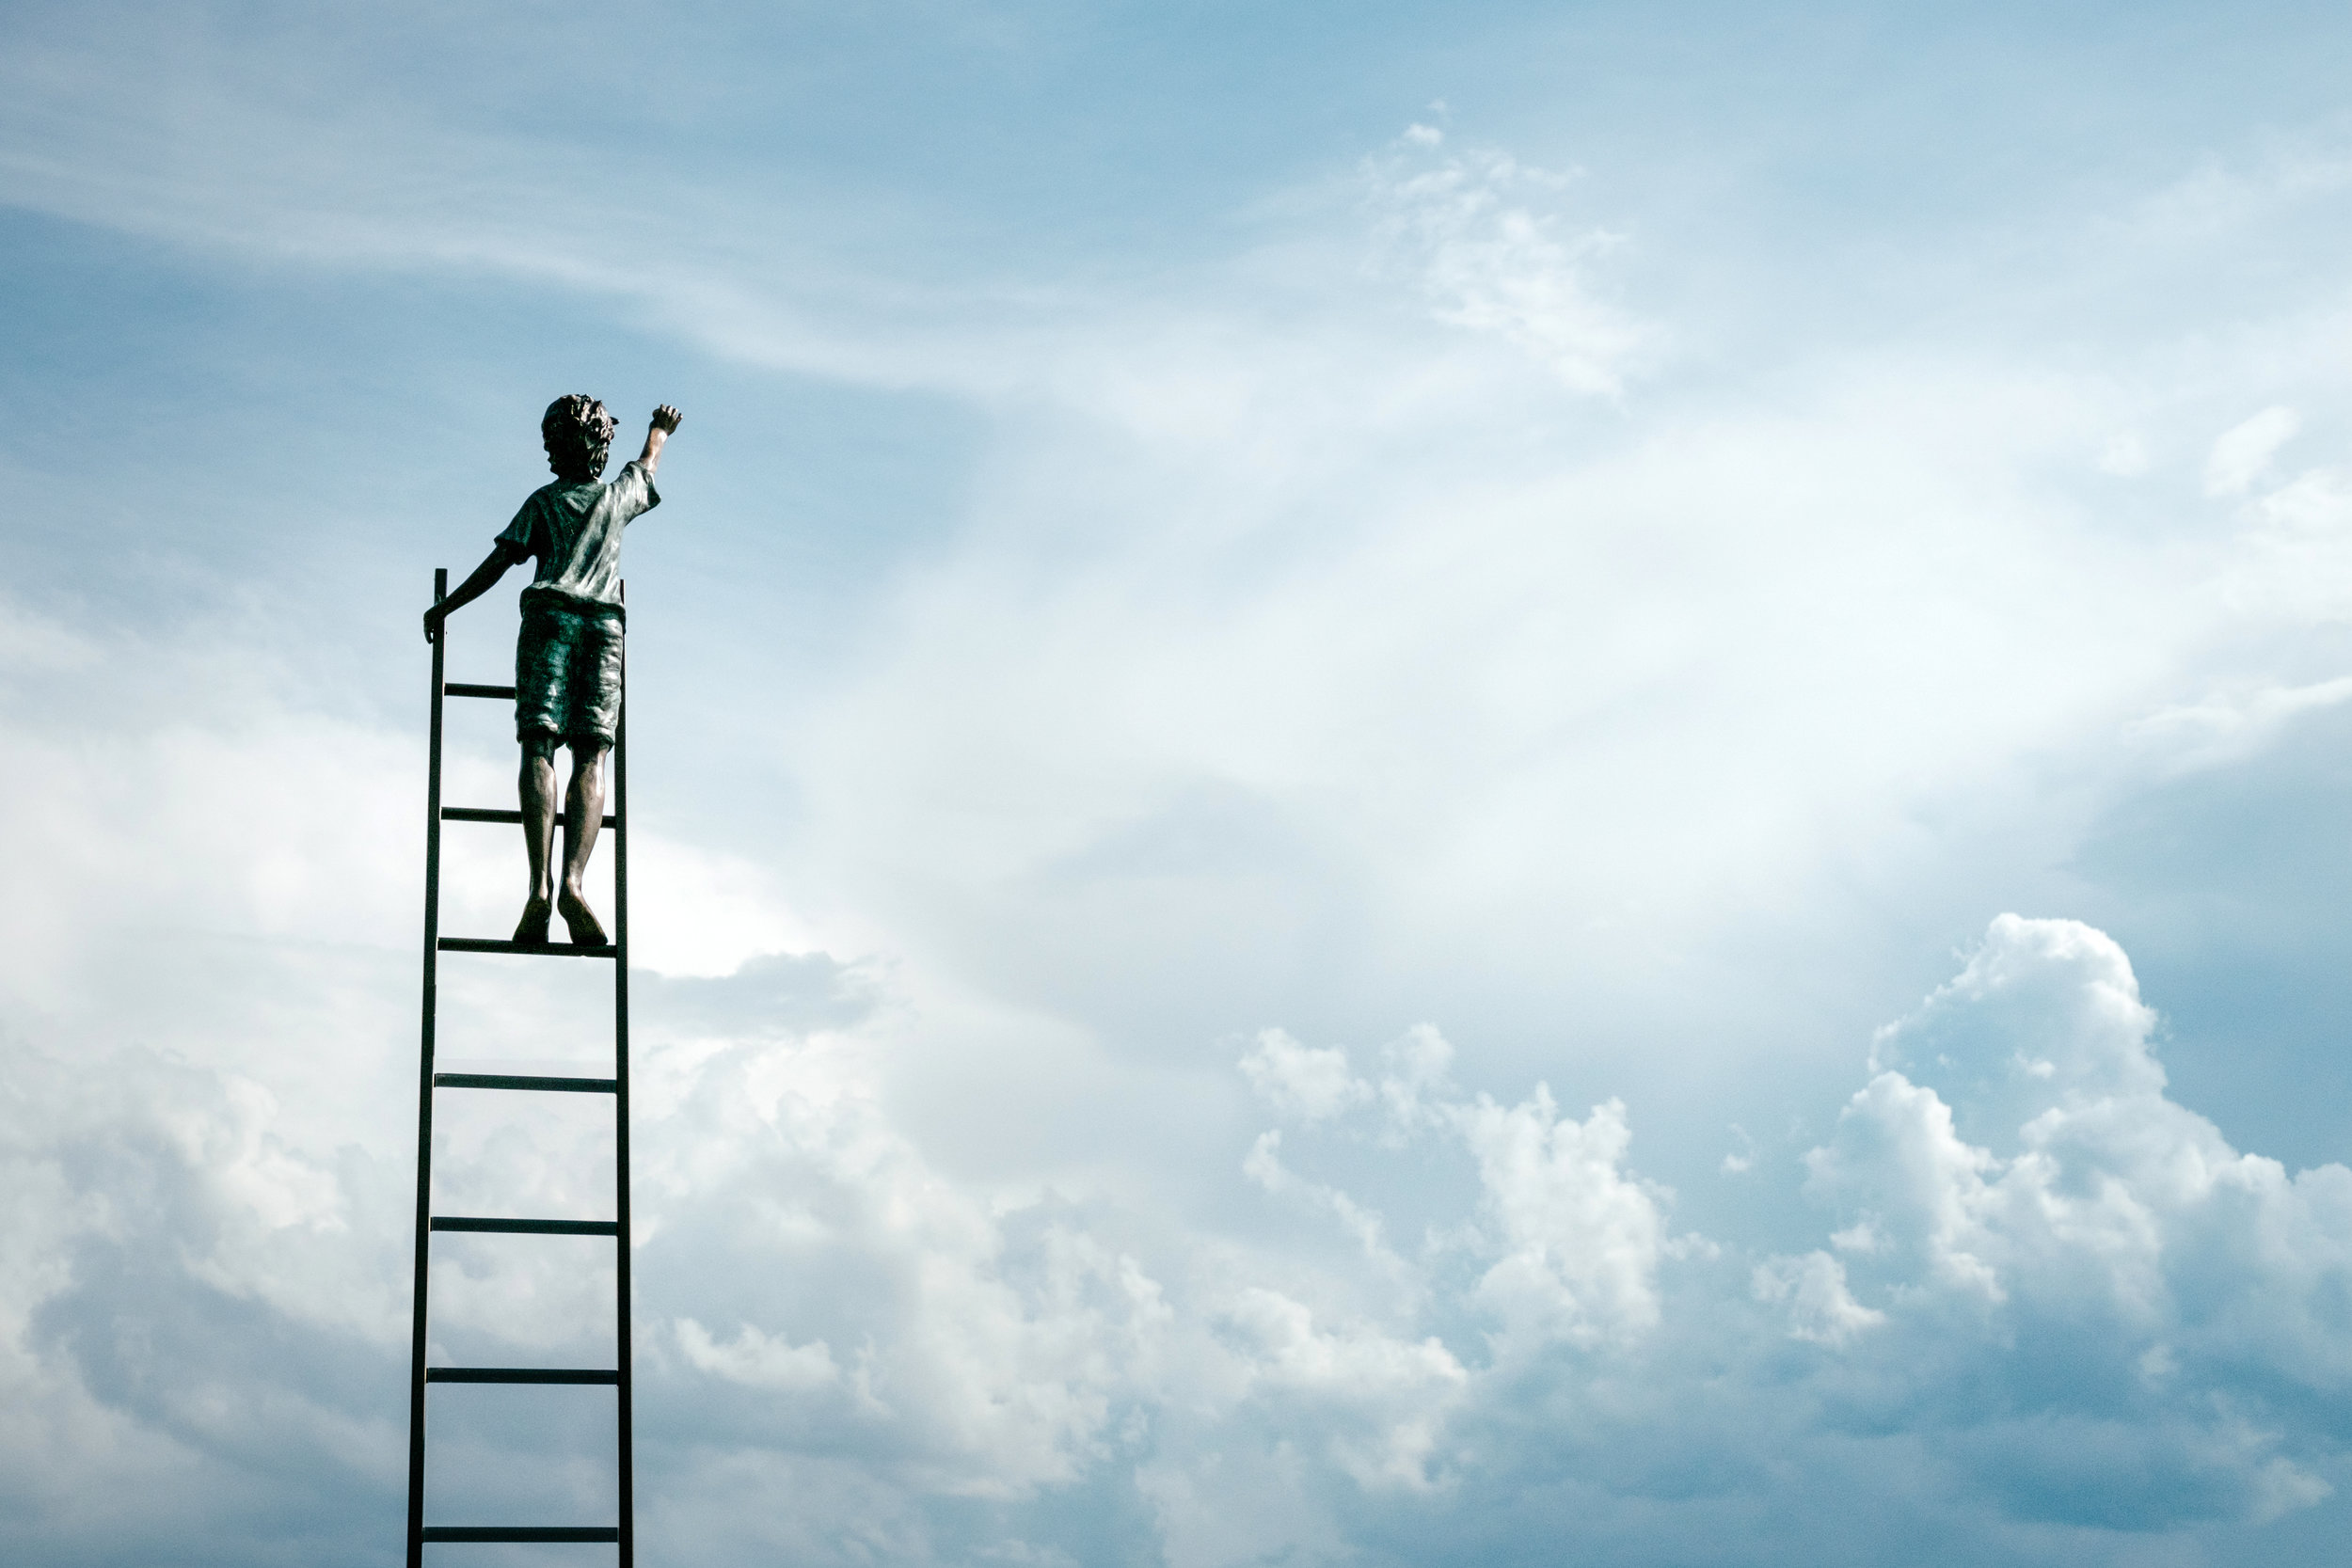 Goals! - Without 'em you're climbing a ladder to nowhere…